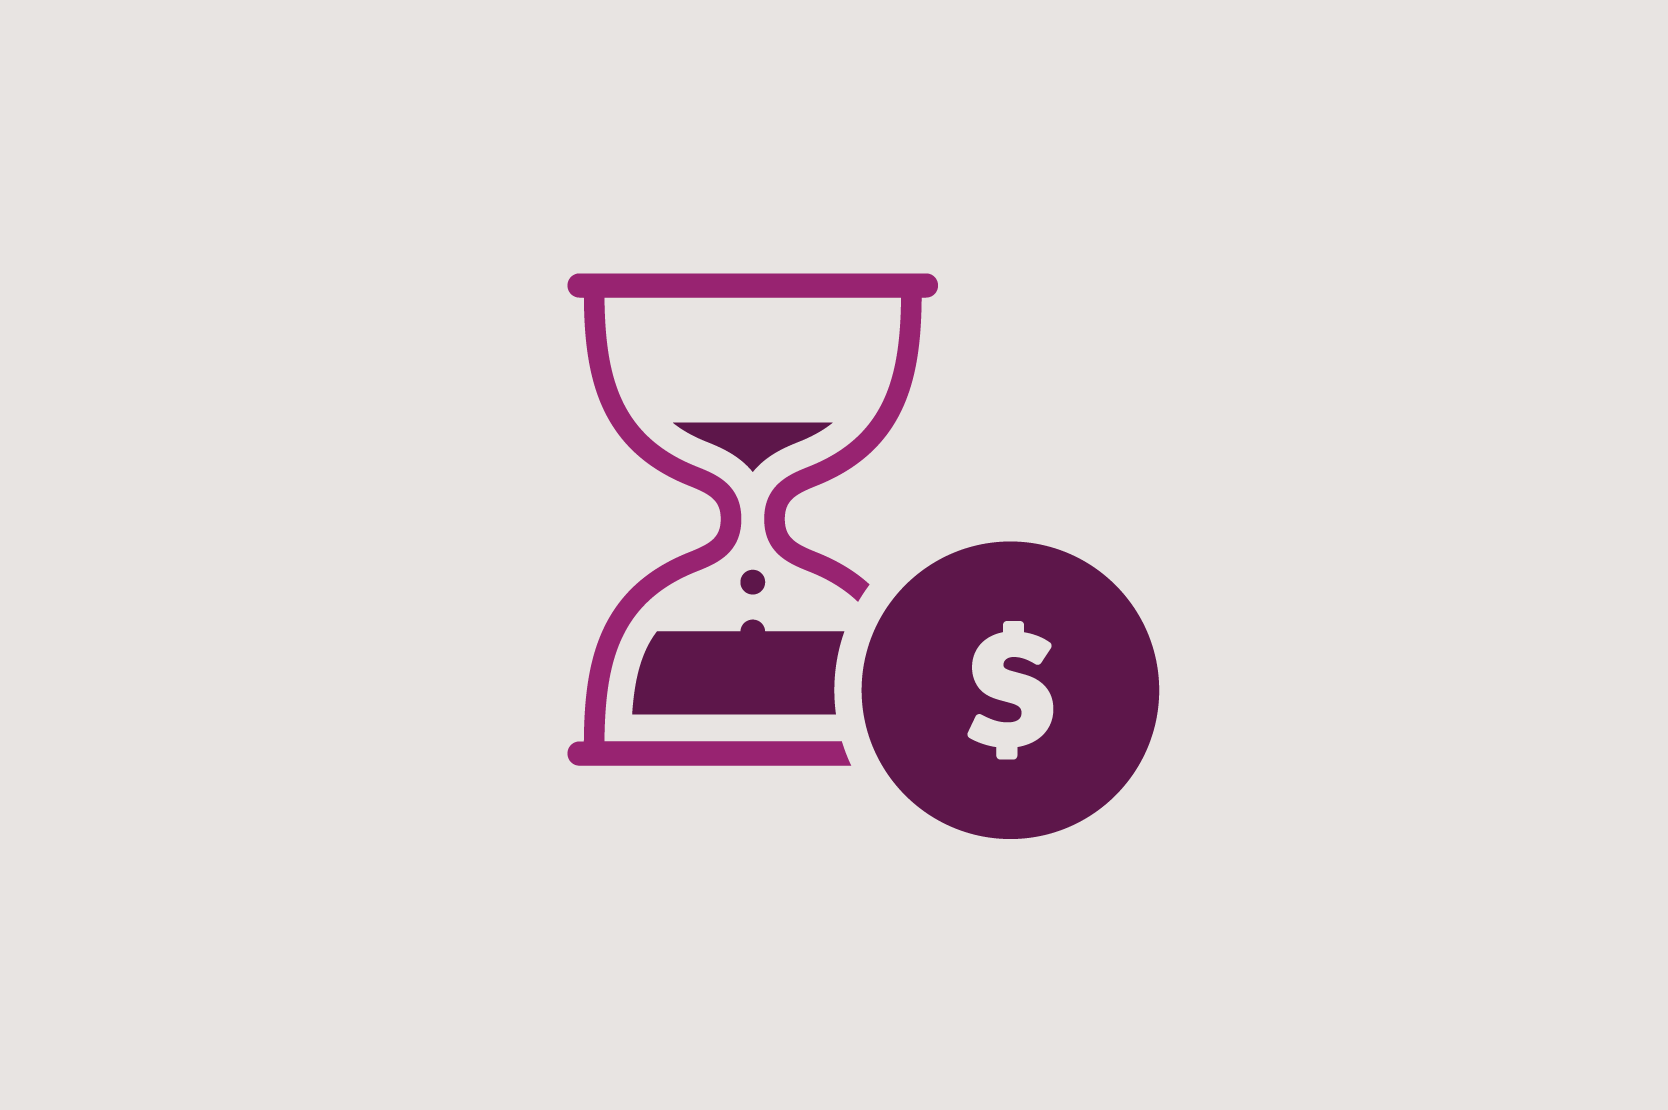 Illustration of an hour glass and a dollar sign